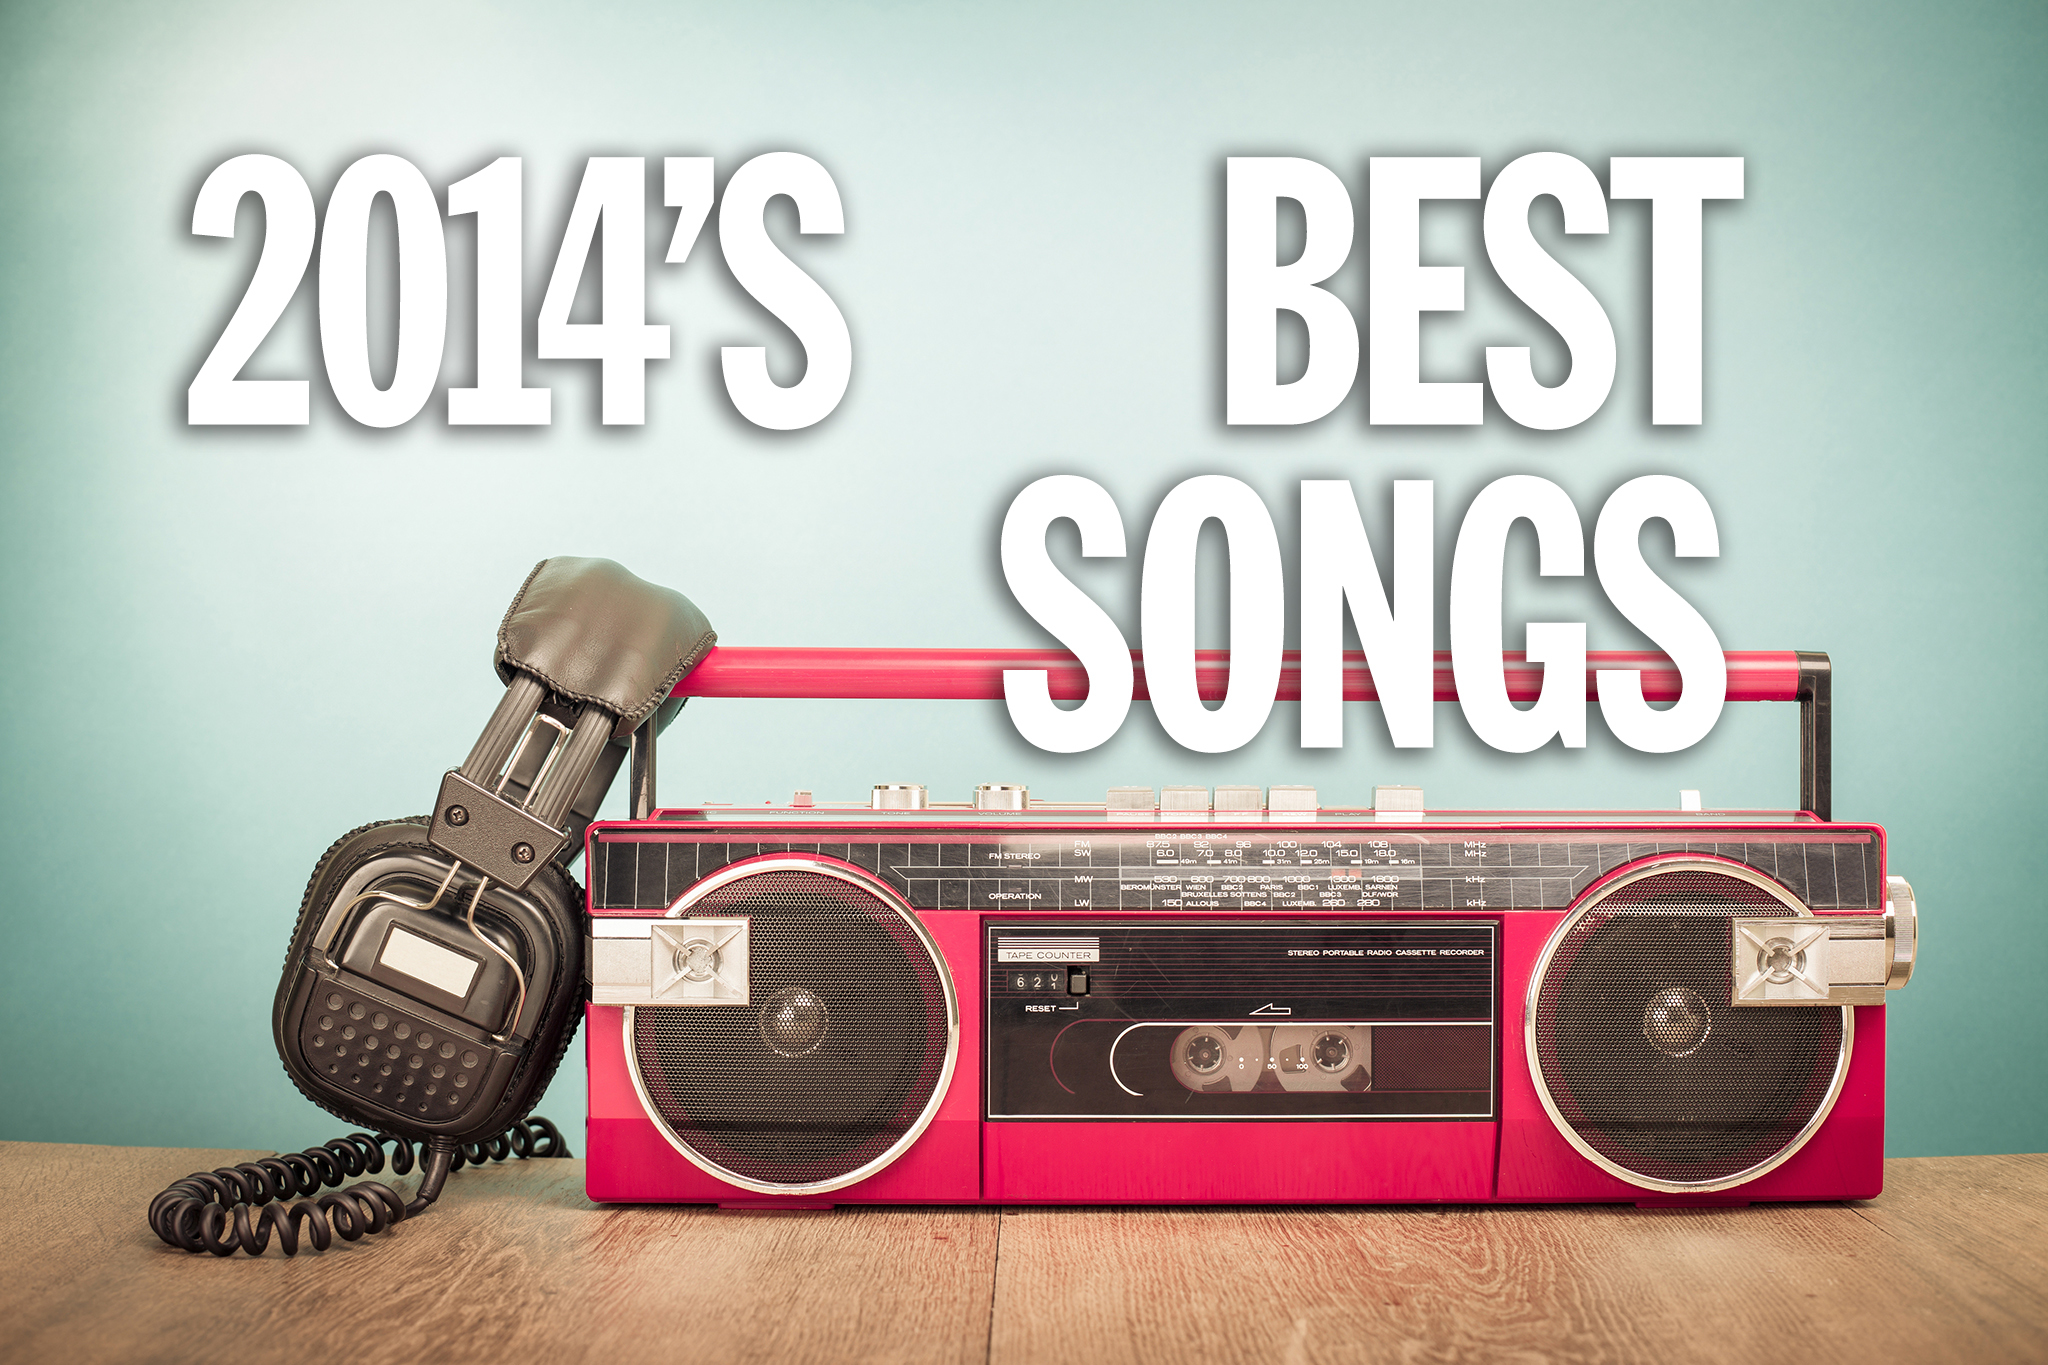 The 20 best songs of 2014